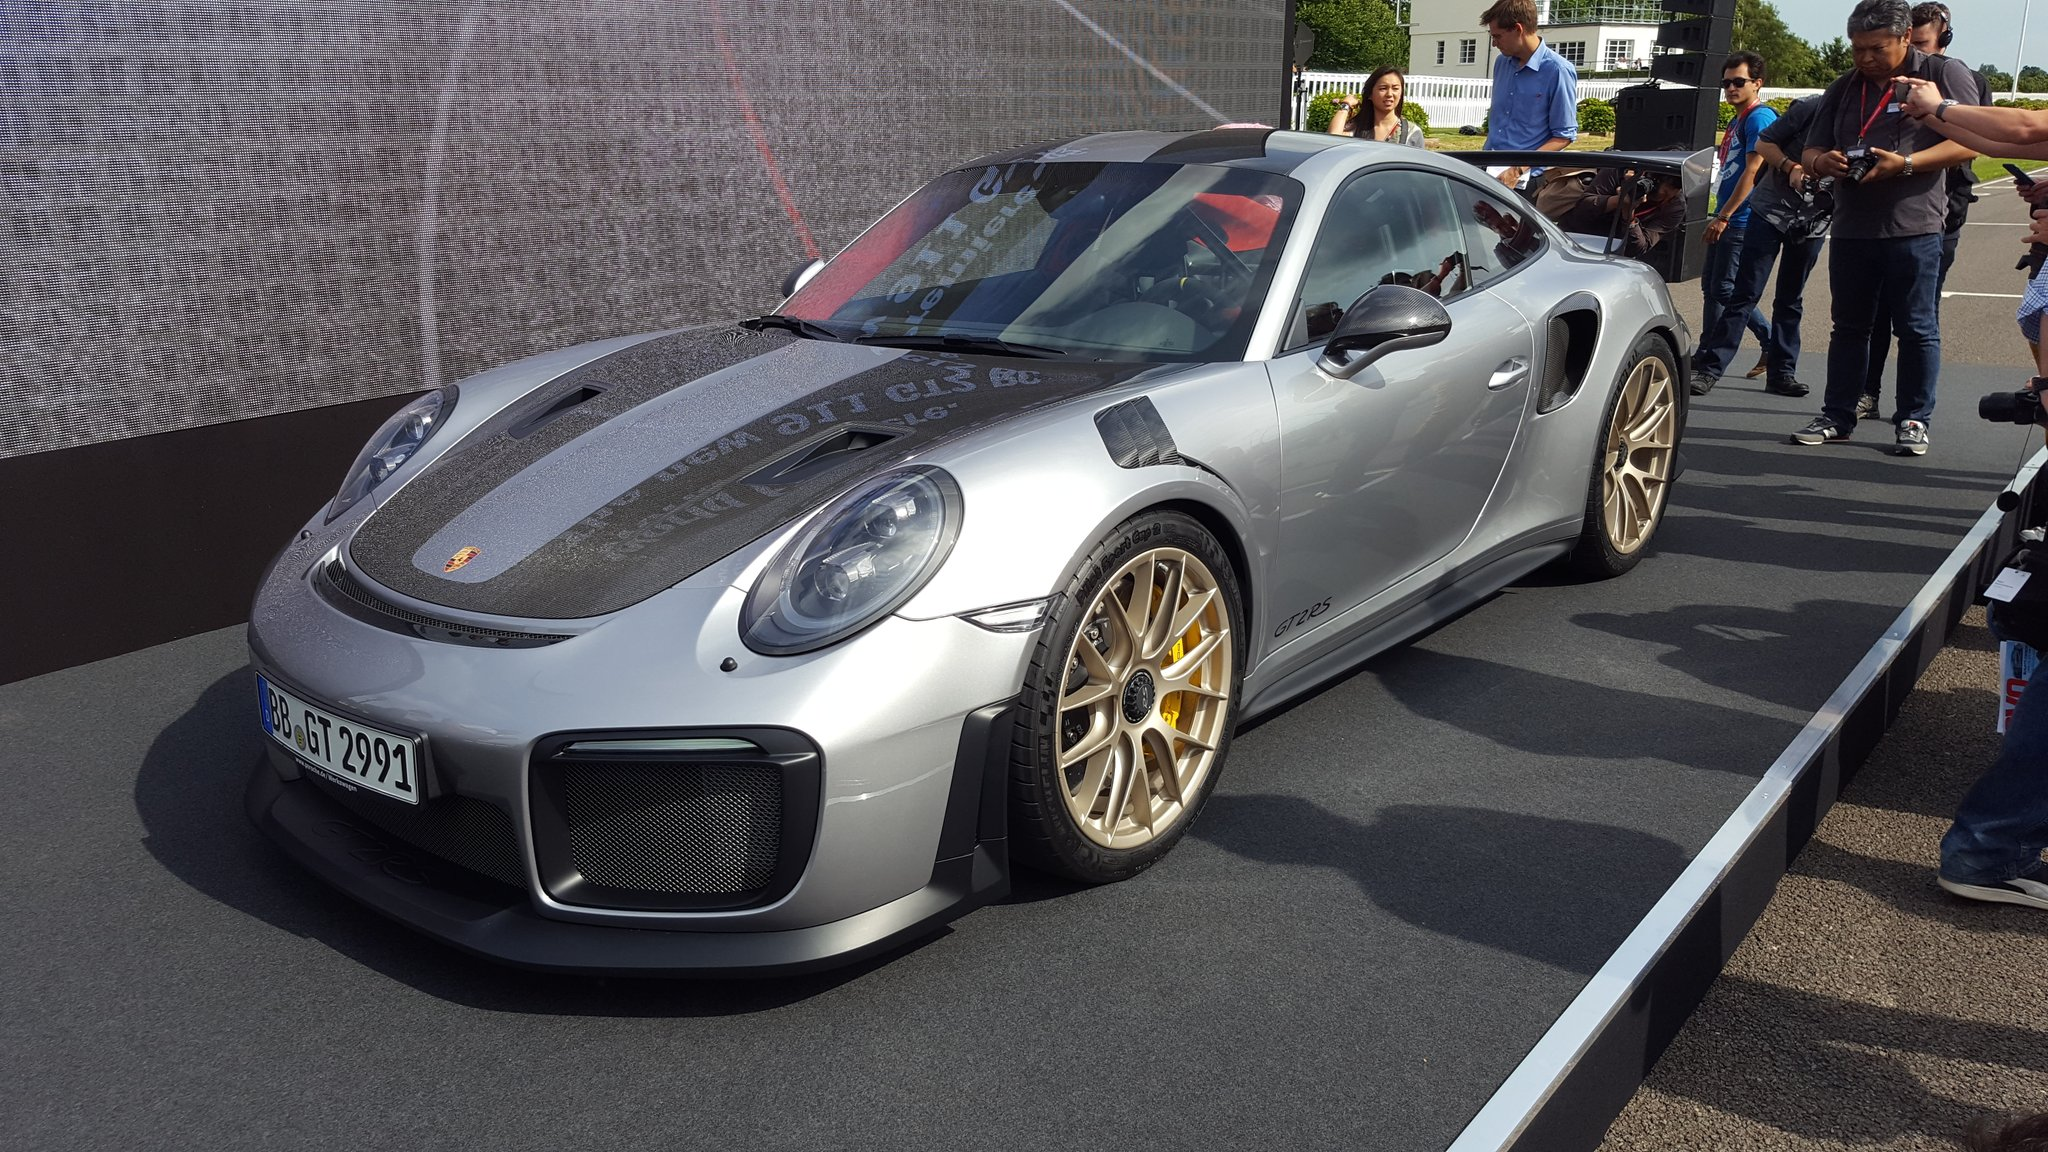 all new porsche 911 gt2 rs revealed at e3 preview autos post. Black Bedroom Furniture Sets. Home Design Ideas